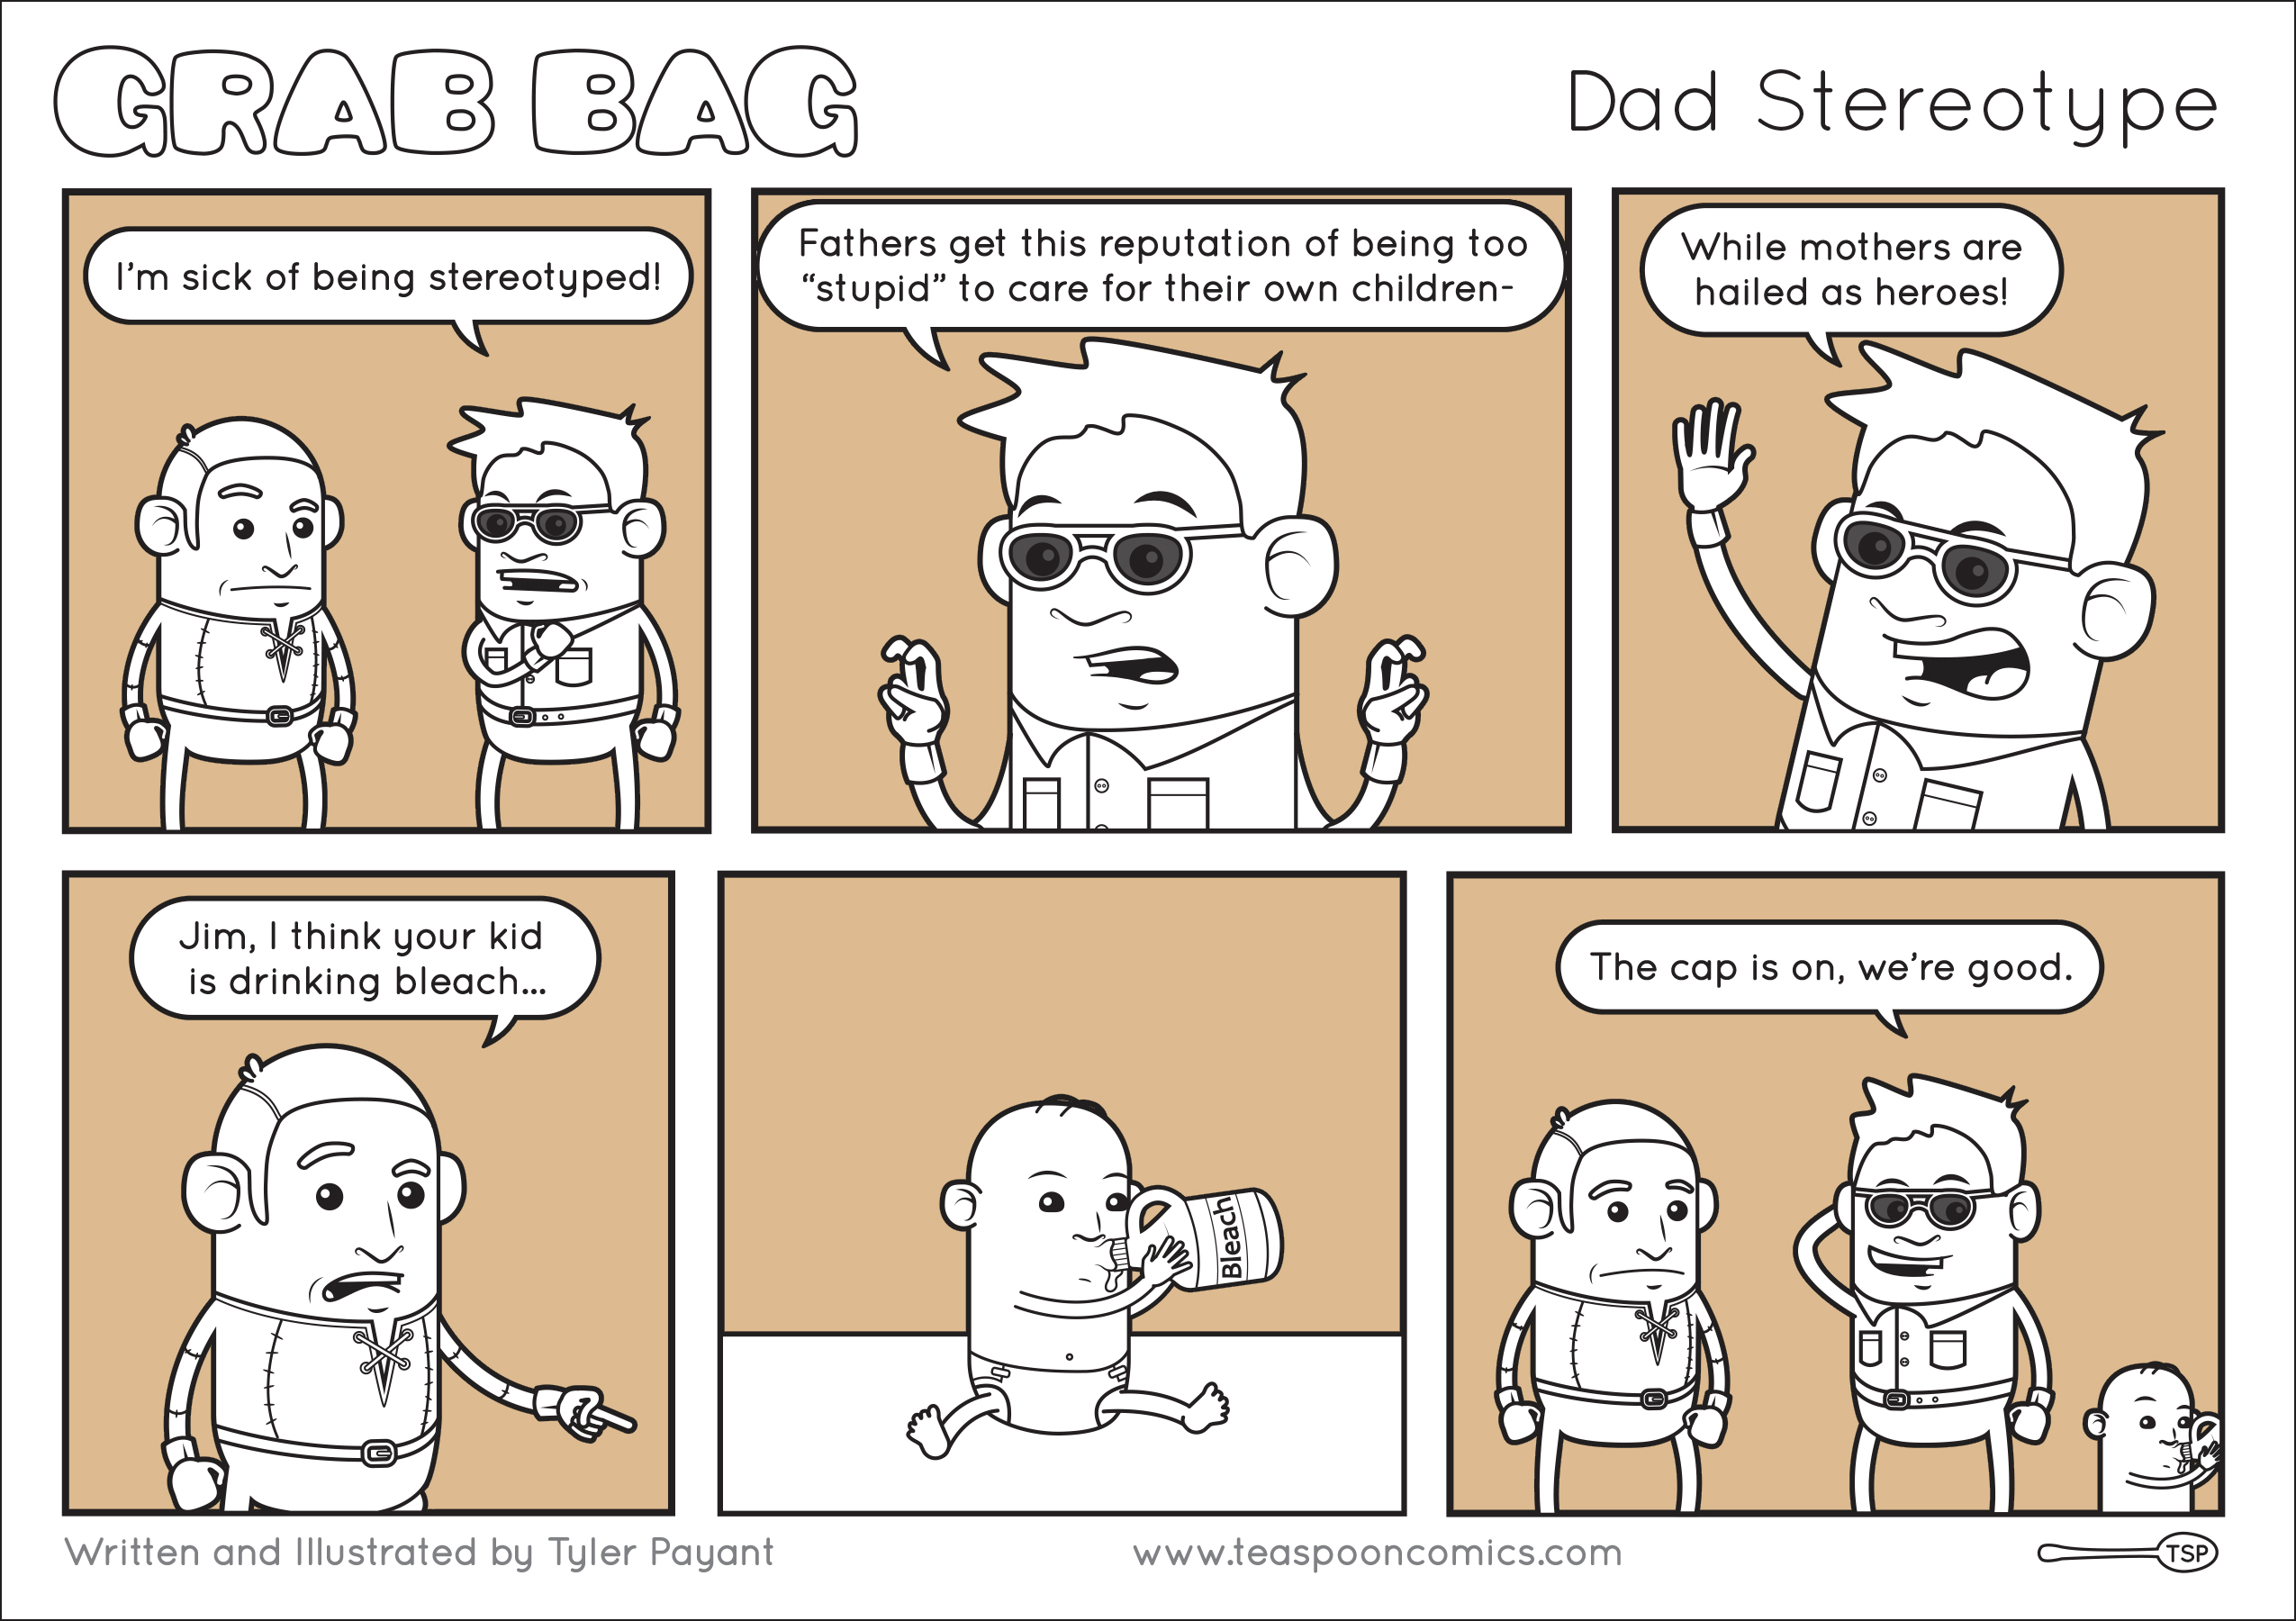 Dad Stereotype